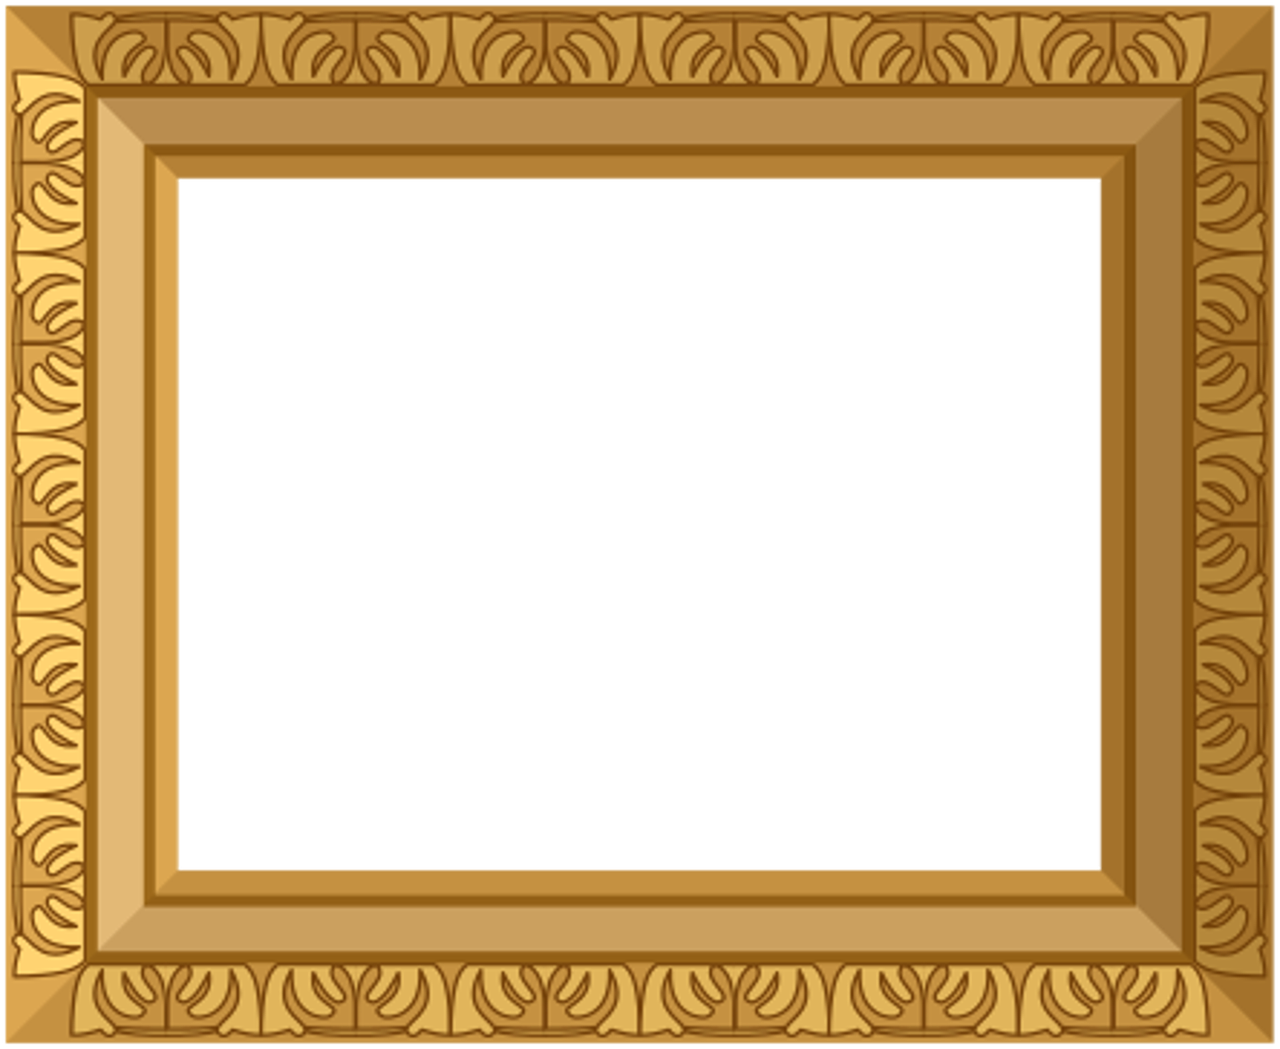 Ornate Gold Frame Border - Gold Frame (1280x1049)